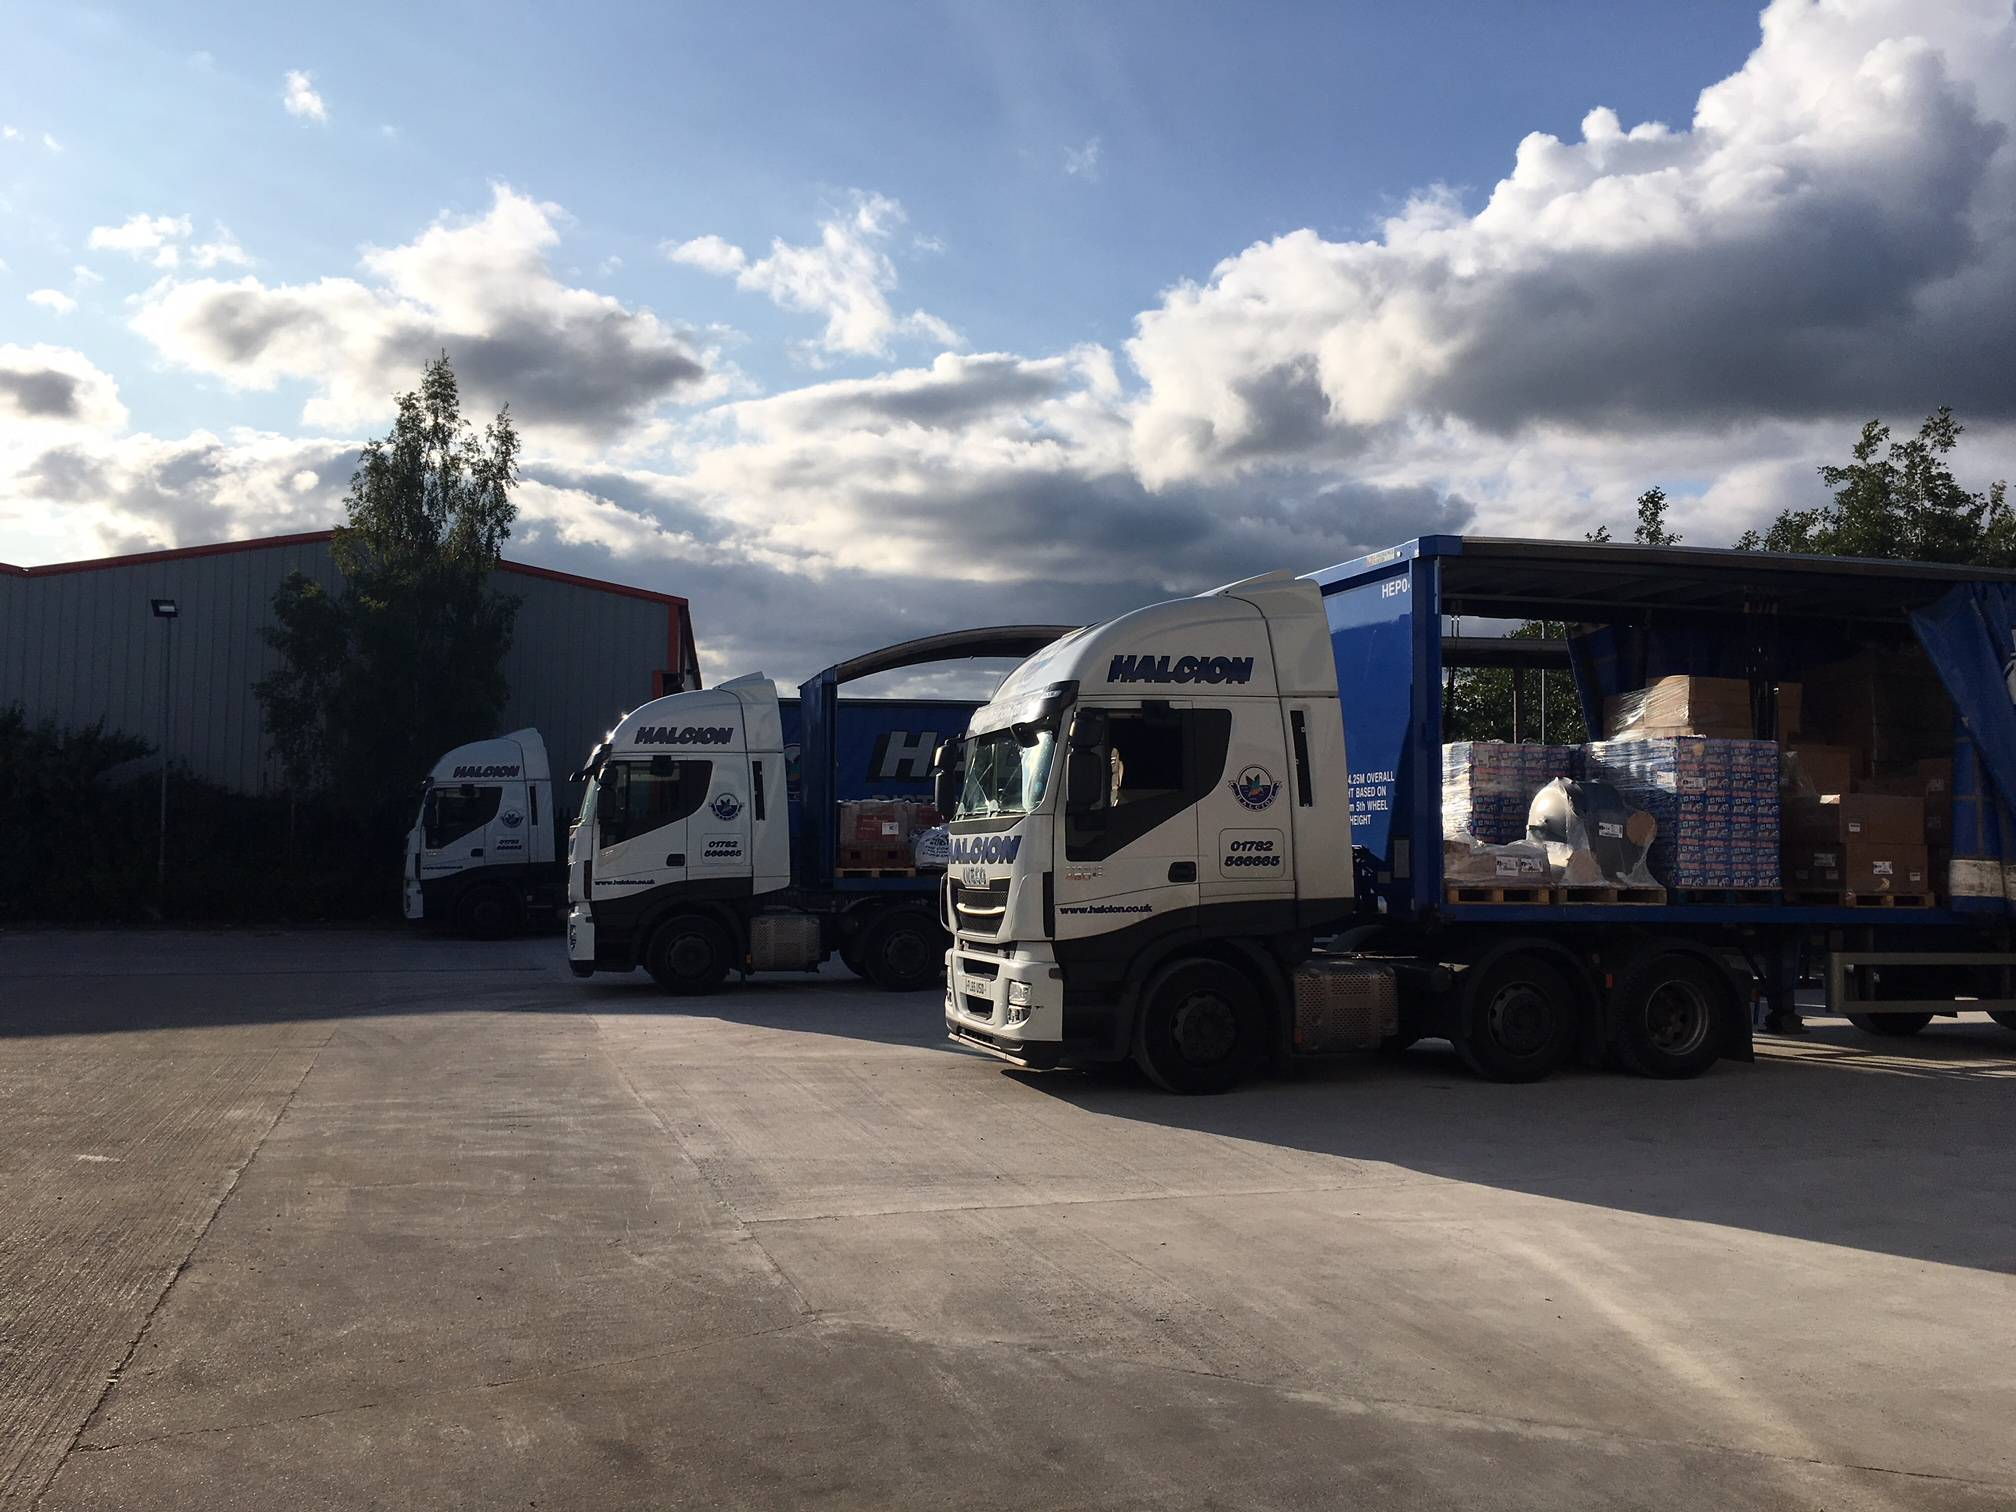 Pallet delivery Newcastle-under-Lyme